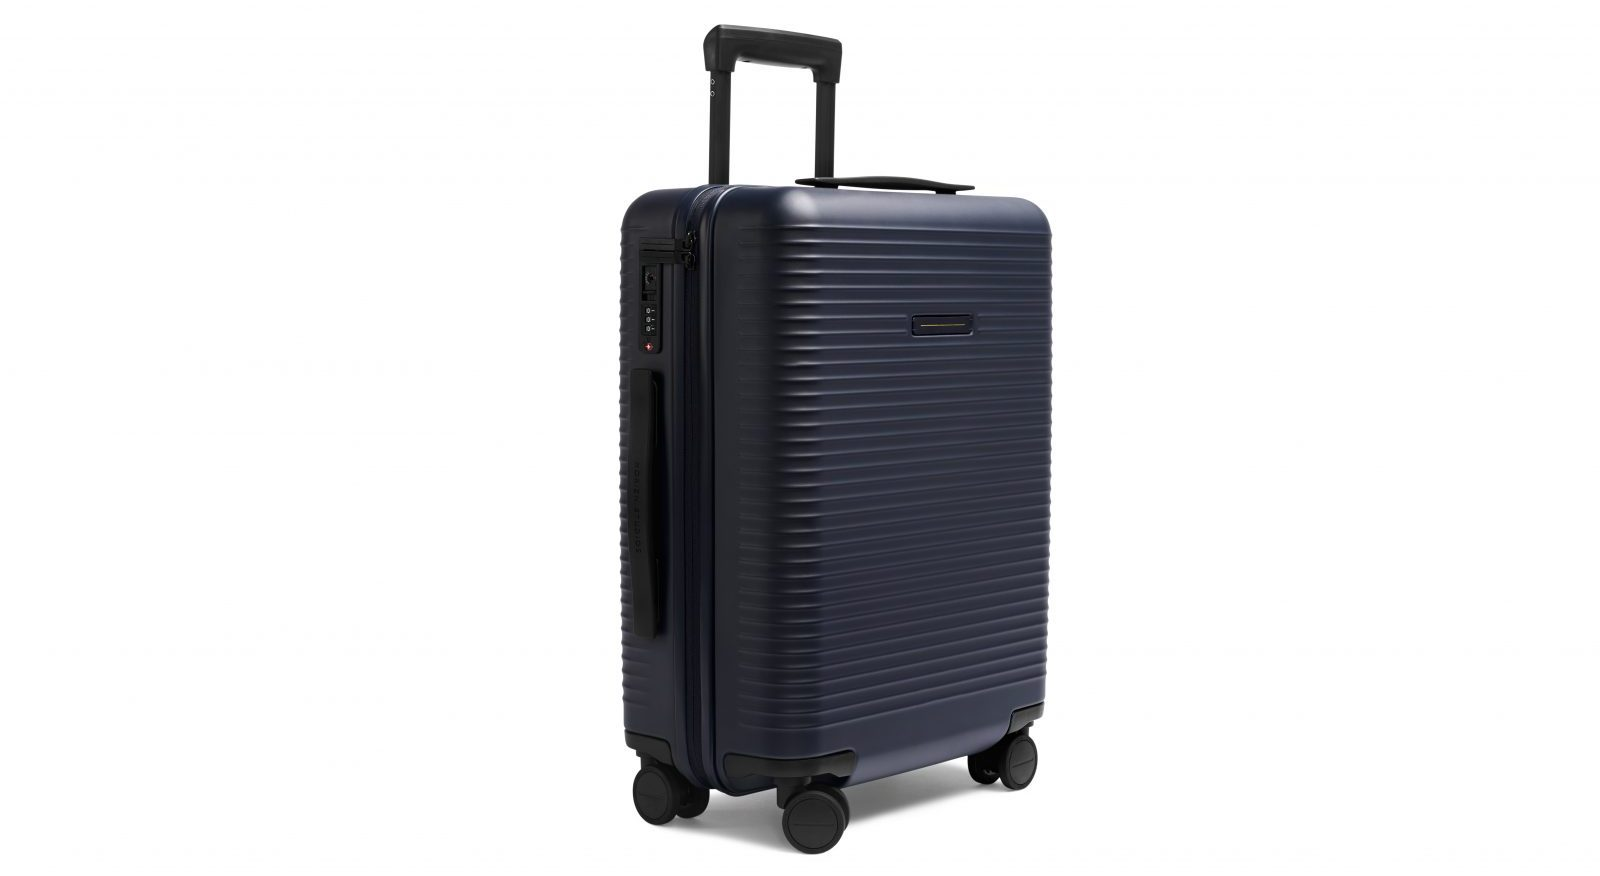 Horizn Studios smart luggage